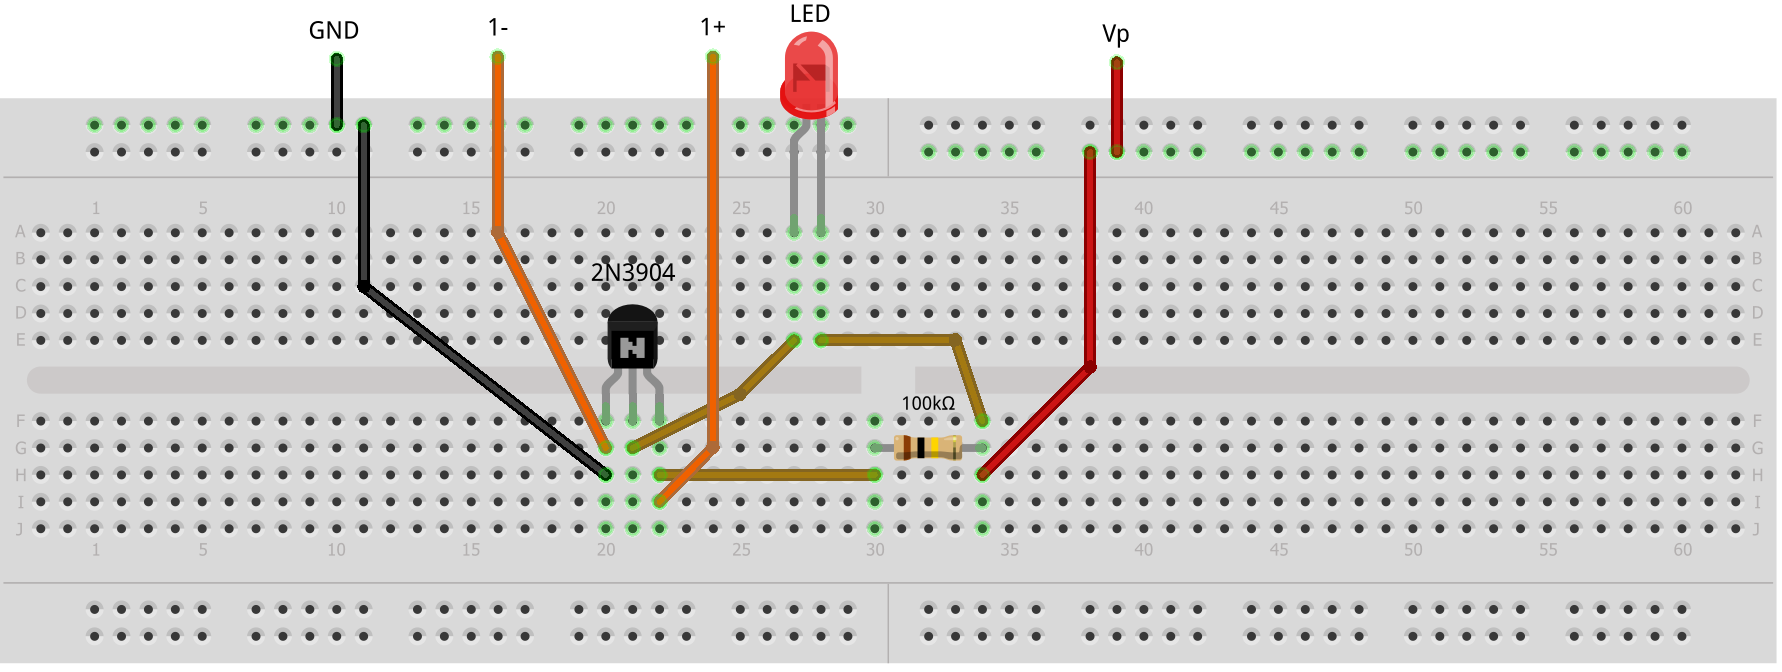 Activity Led As Light Sensor Analog Devices Wiki Circuit Diagram Using Breadboard Figure 2 And Single Common Emitter Npn